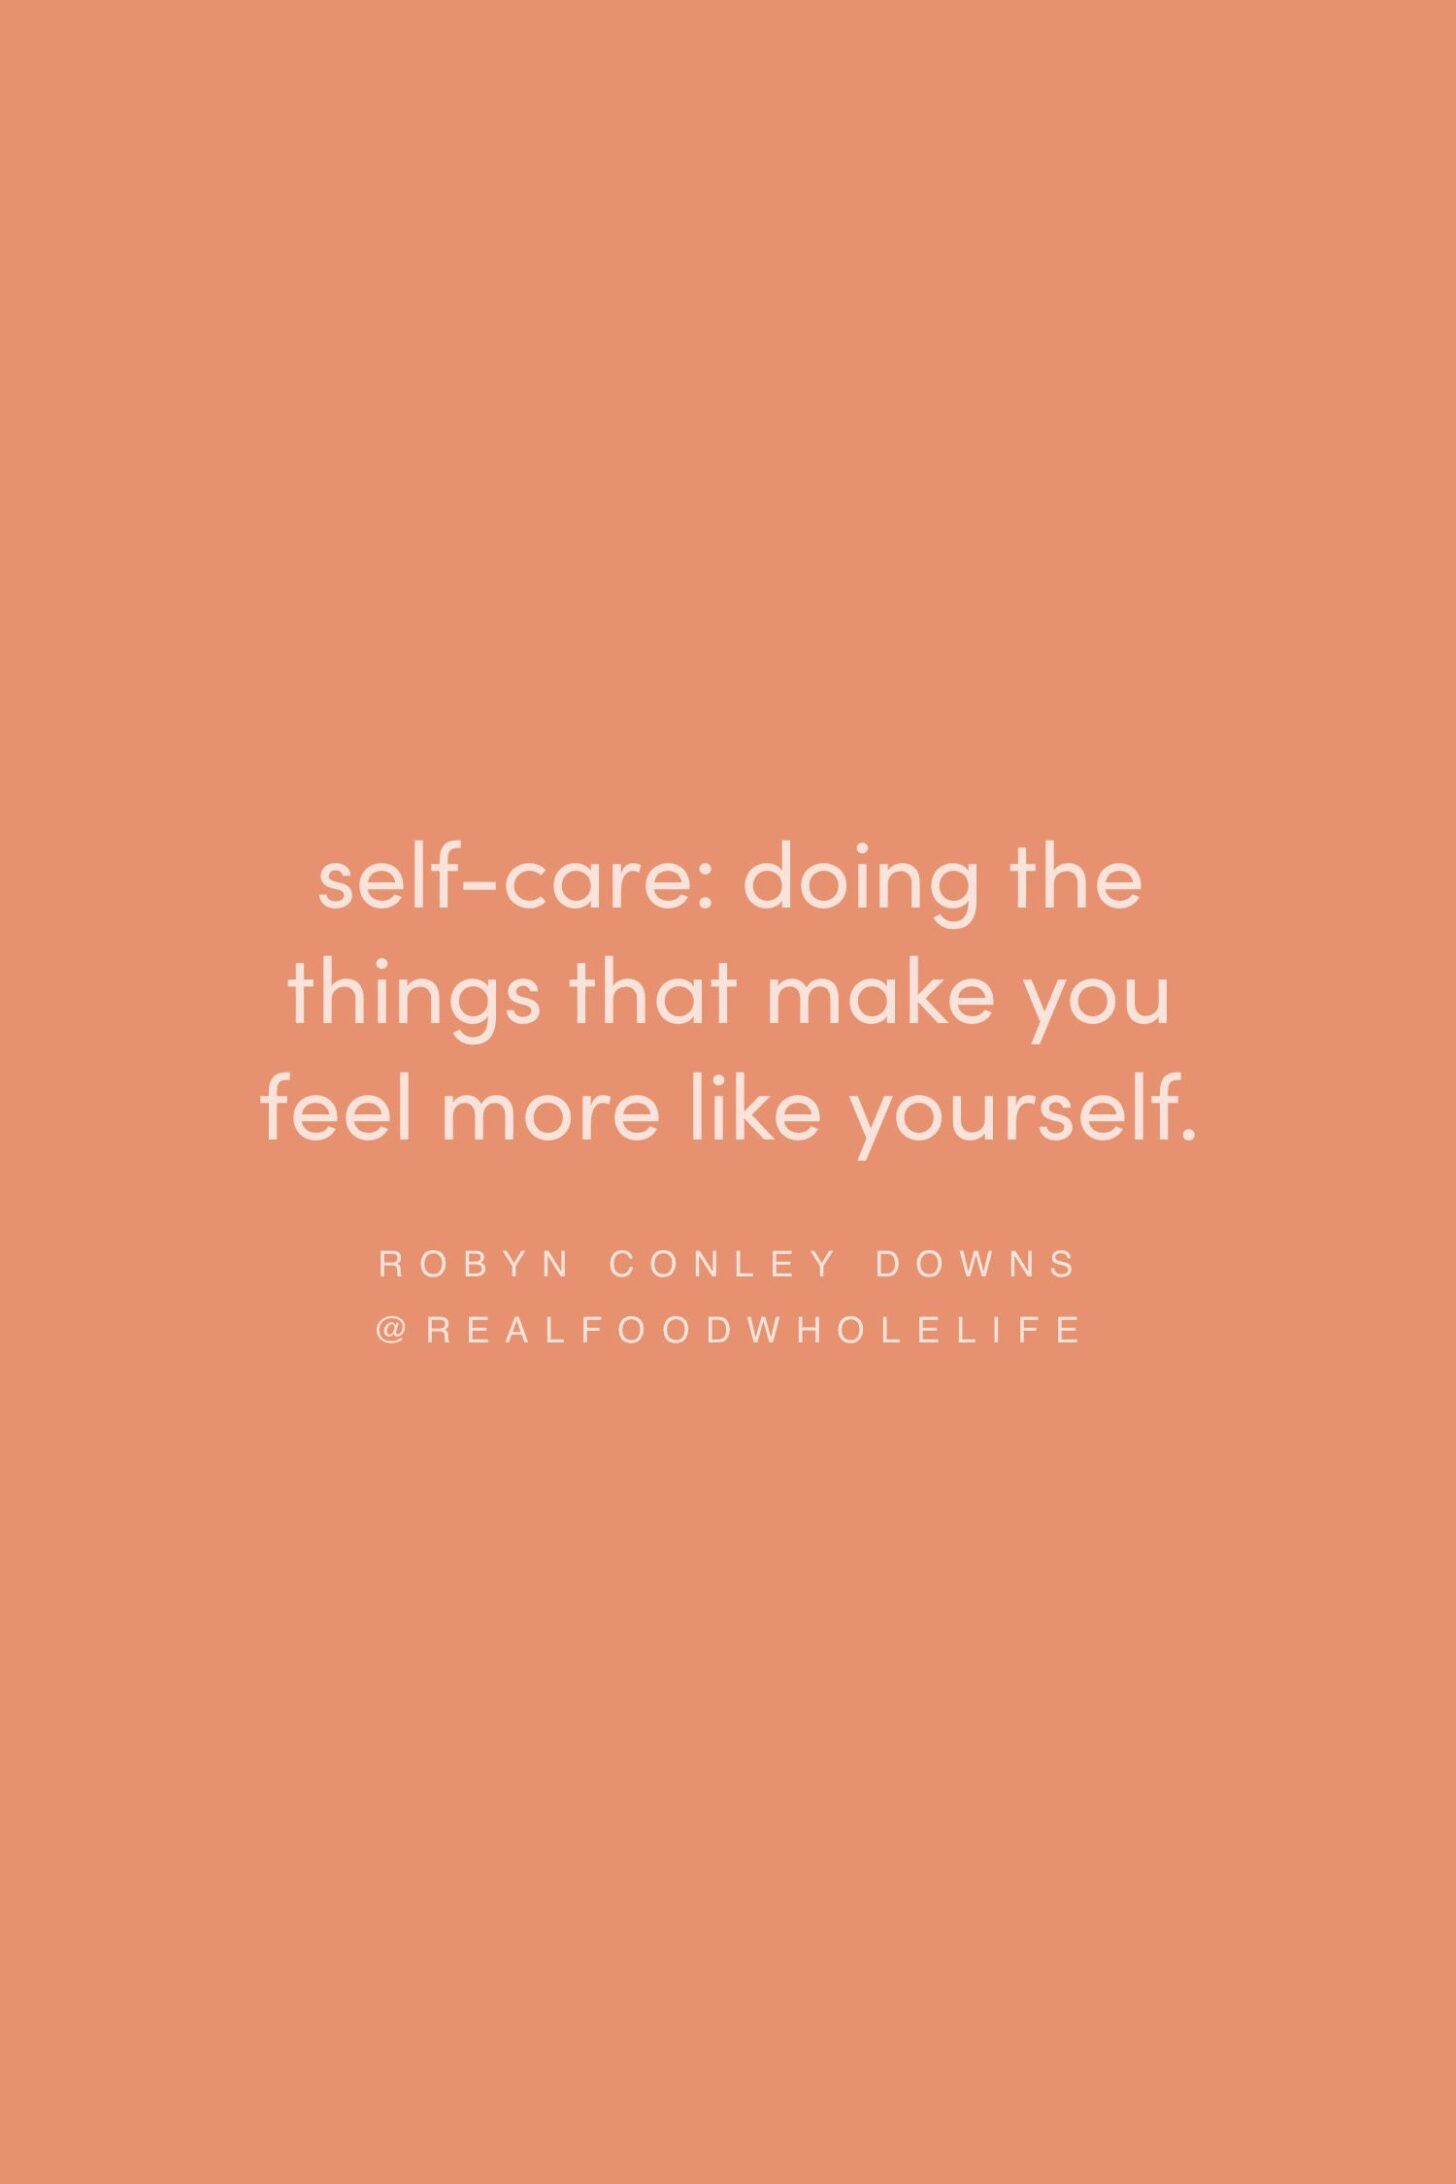 Quote on self-care by Robyn Conley Downs on the Feel Good Effect Podcast #realfoodwholelife #feelgoodeffectpodcast #motivationalquote #inspirationalquote #positivityquote #selfcarequote #burnoutquote #selflovequote #selfcompassionquote